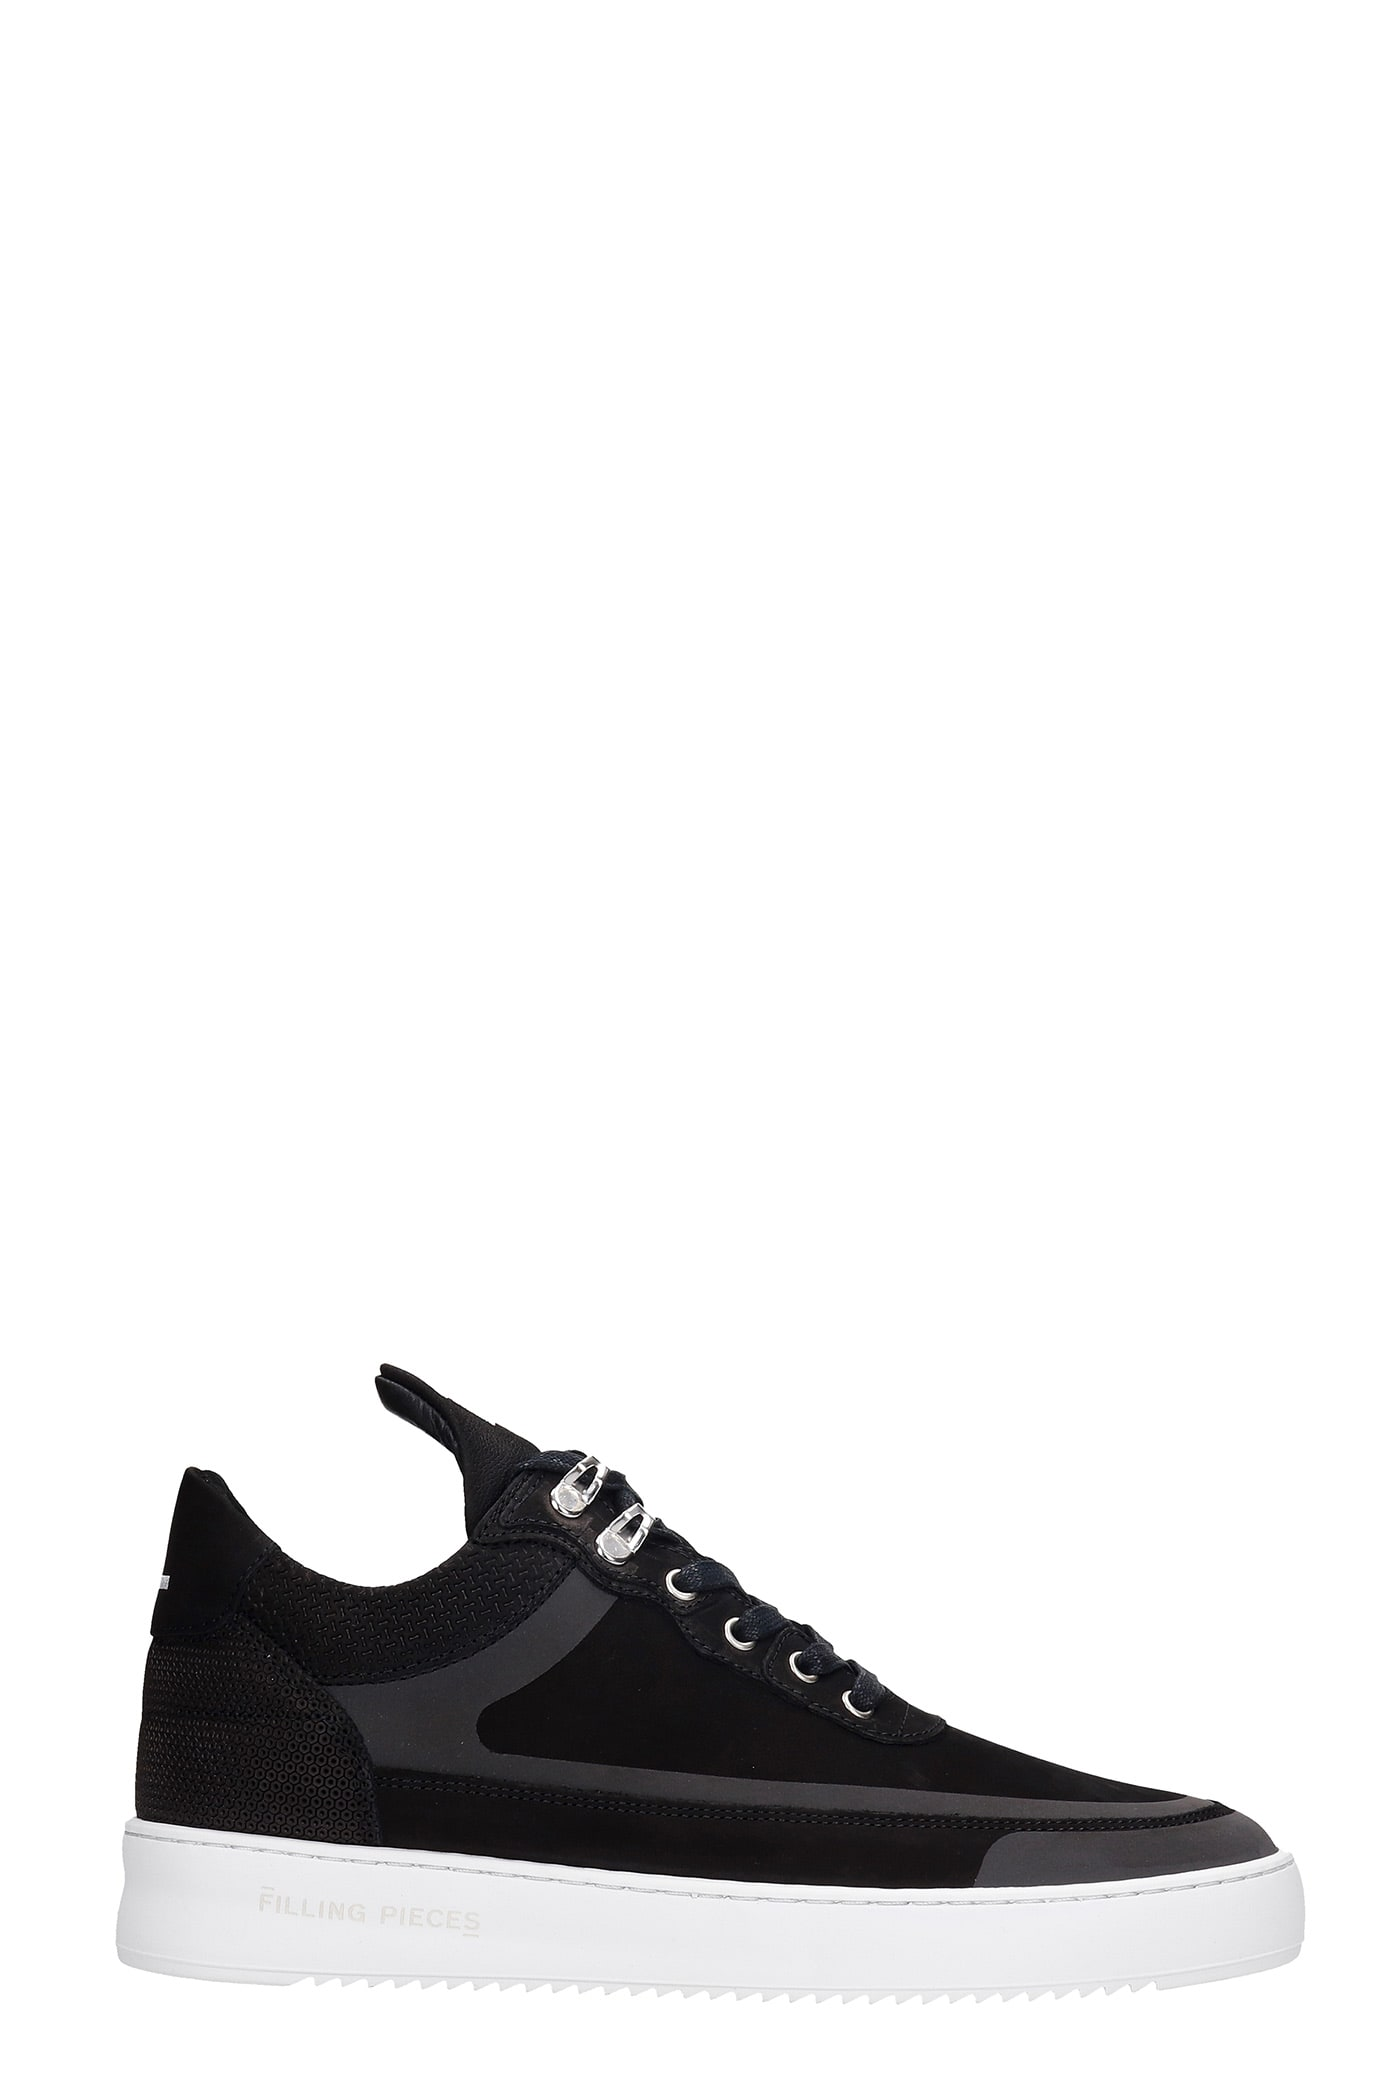 Low Top Ripple Sneakers In Black Leather And Fabric